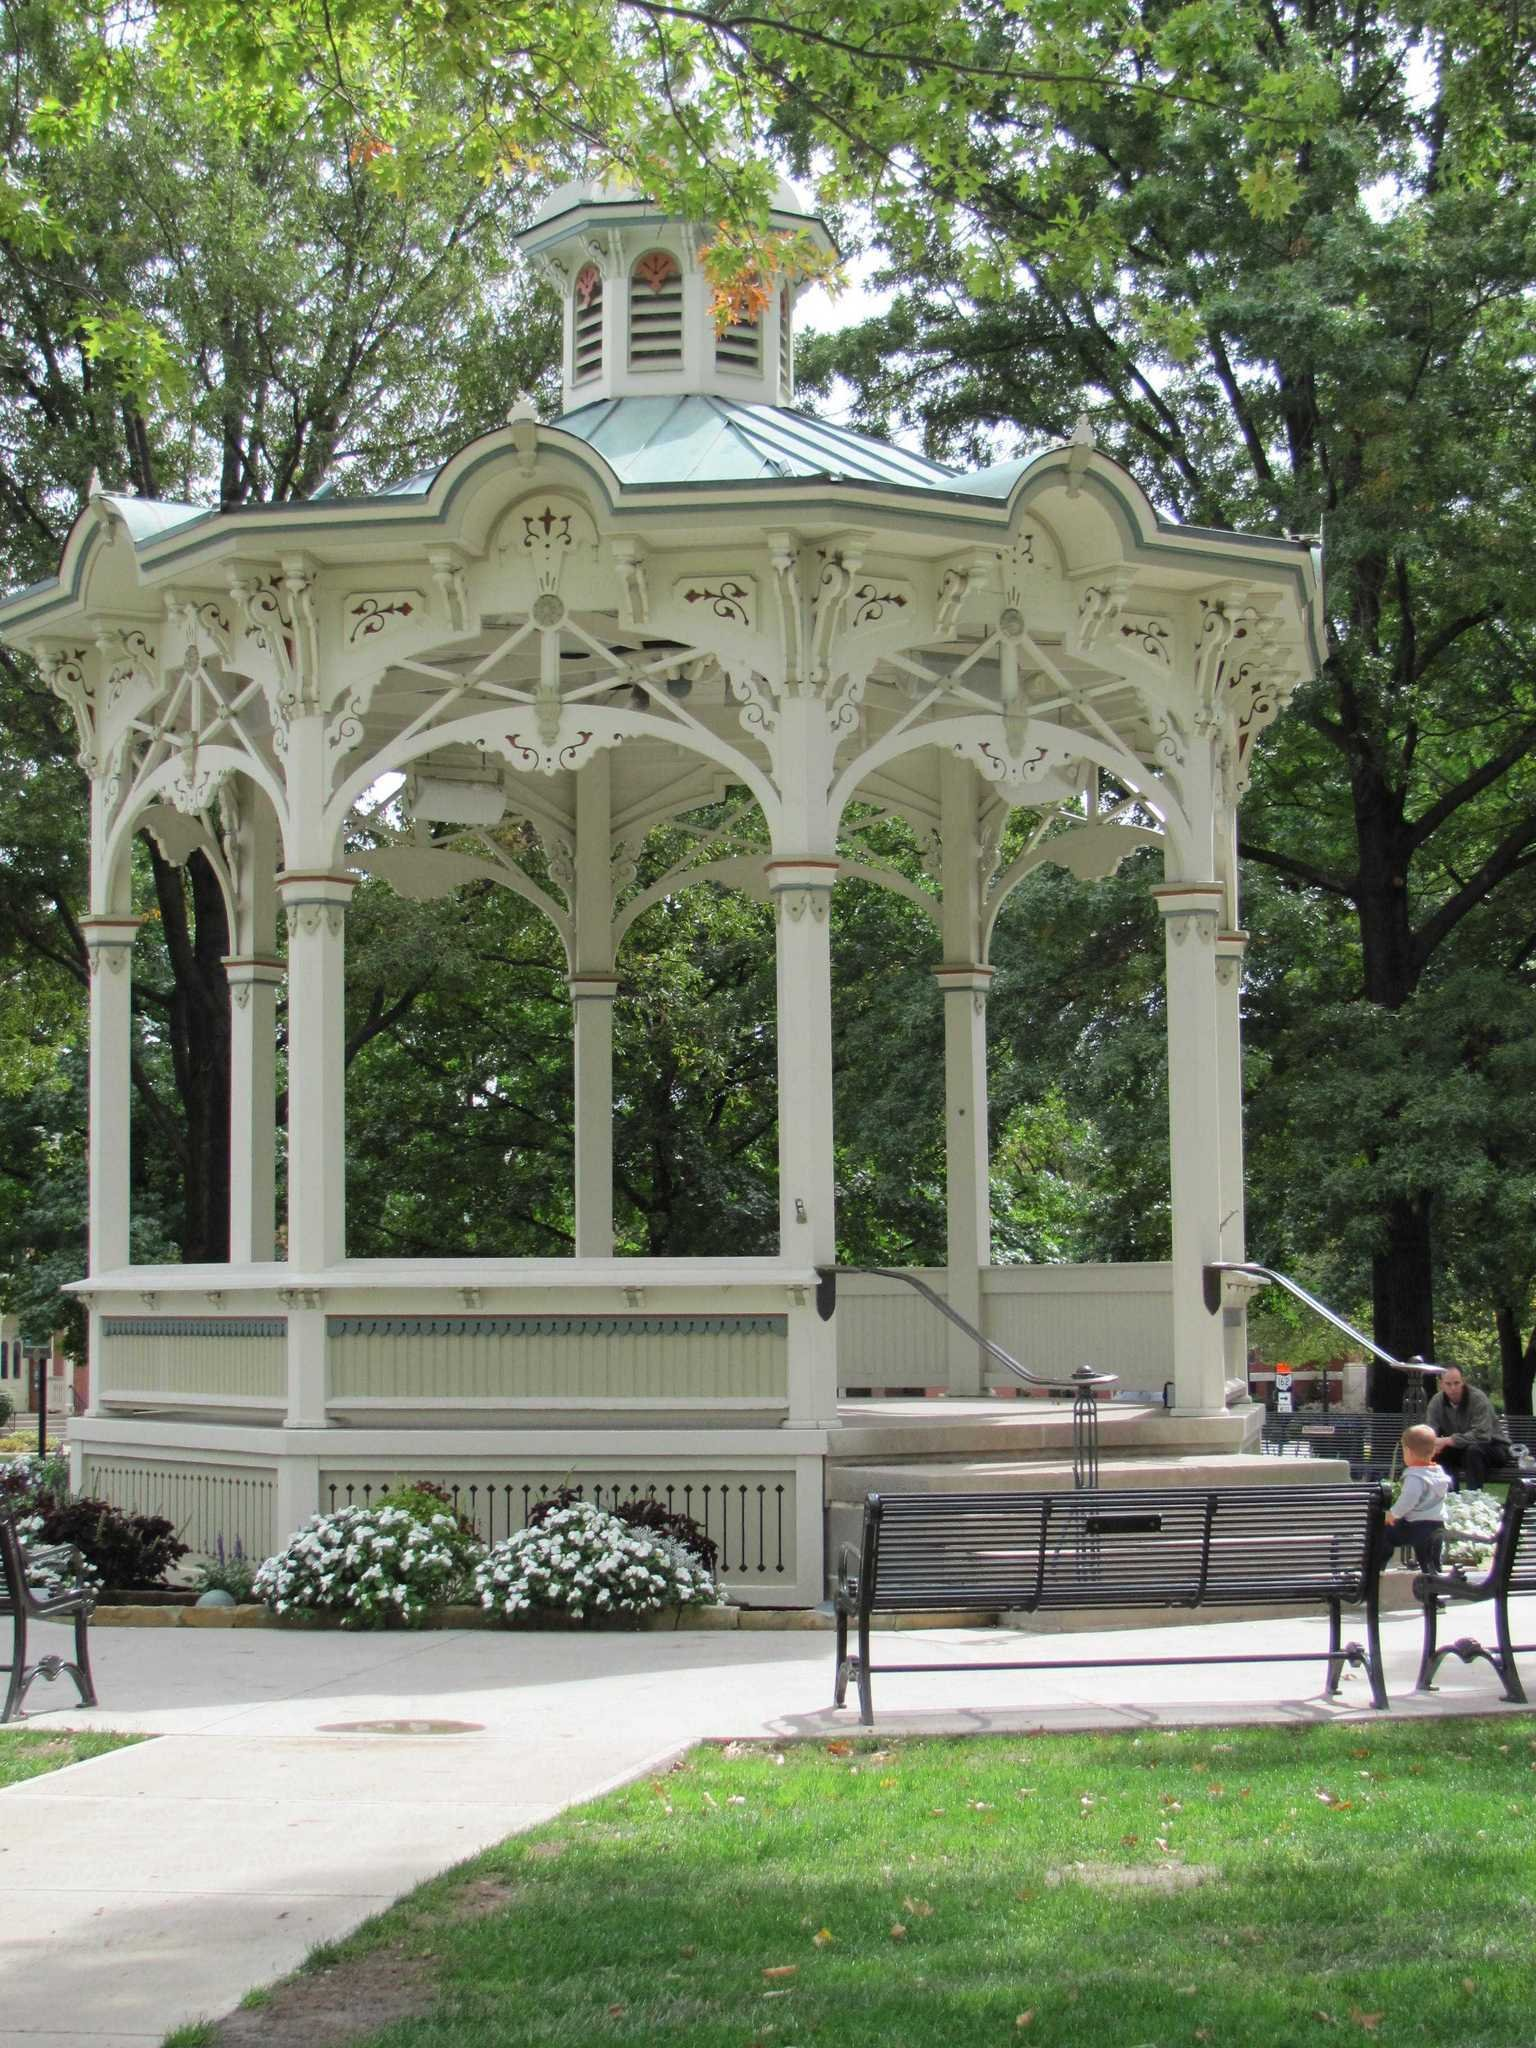 The Medina Gazebo (in the middle of uptown park) during the summertime.